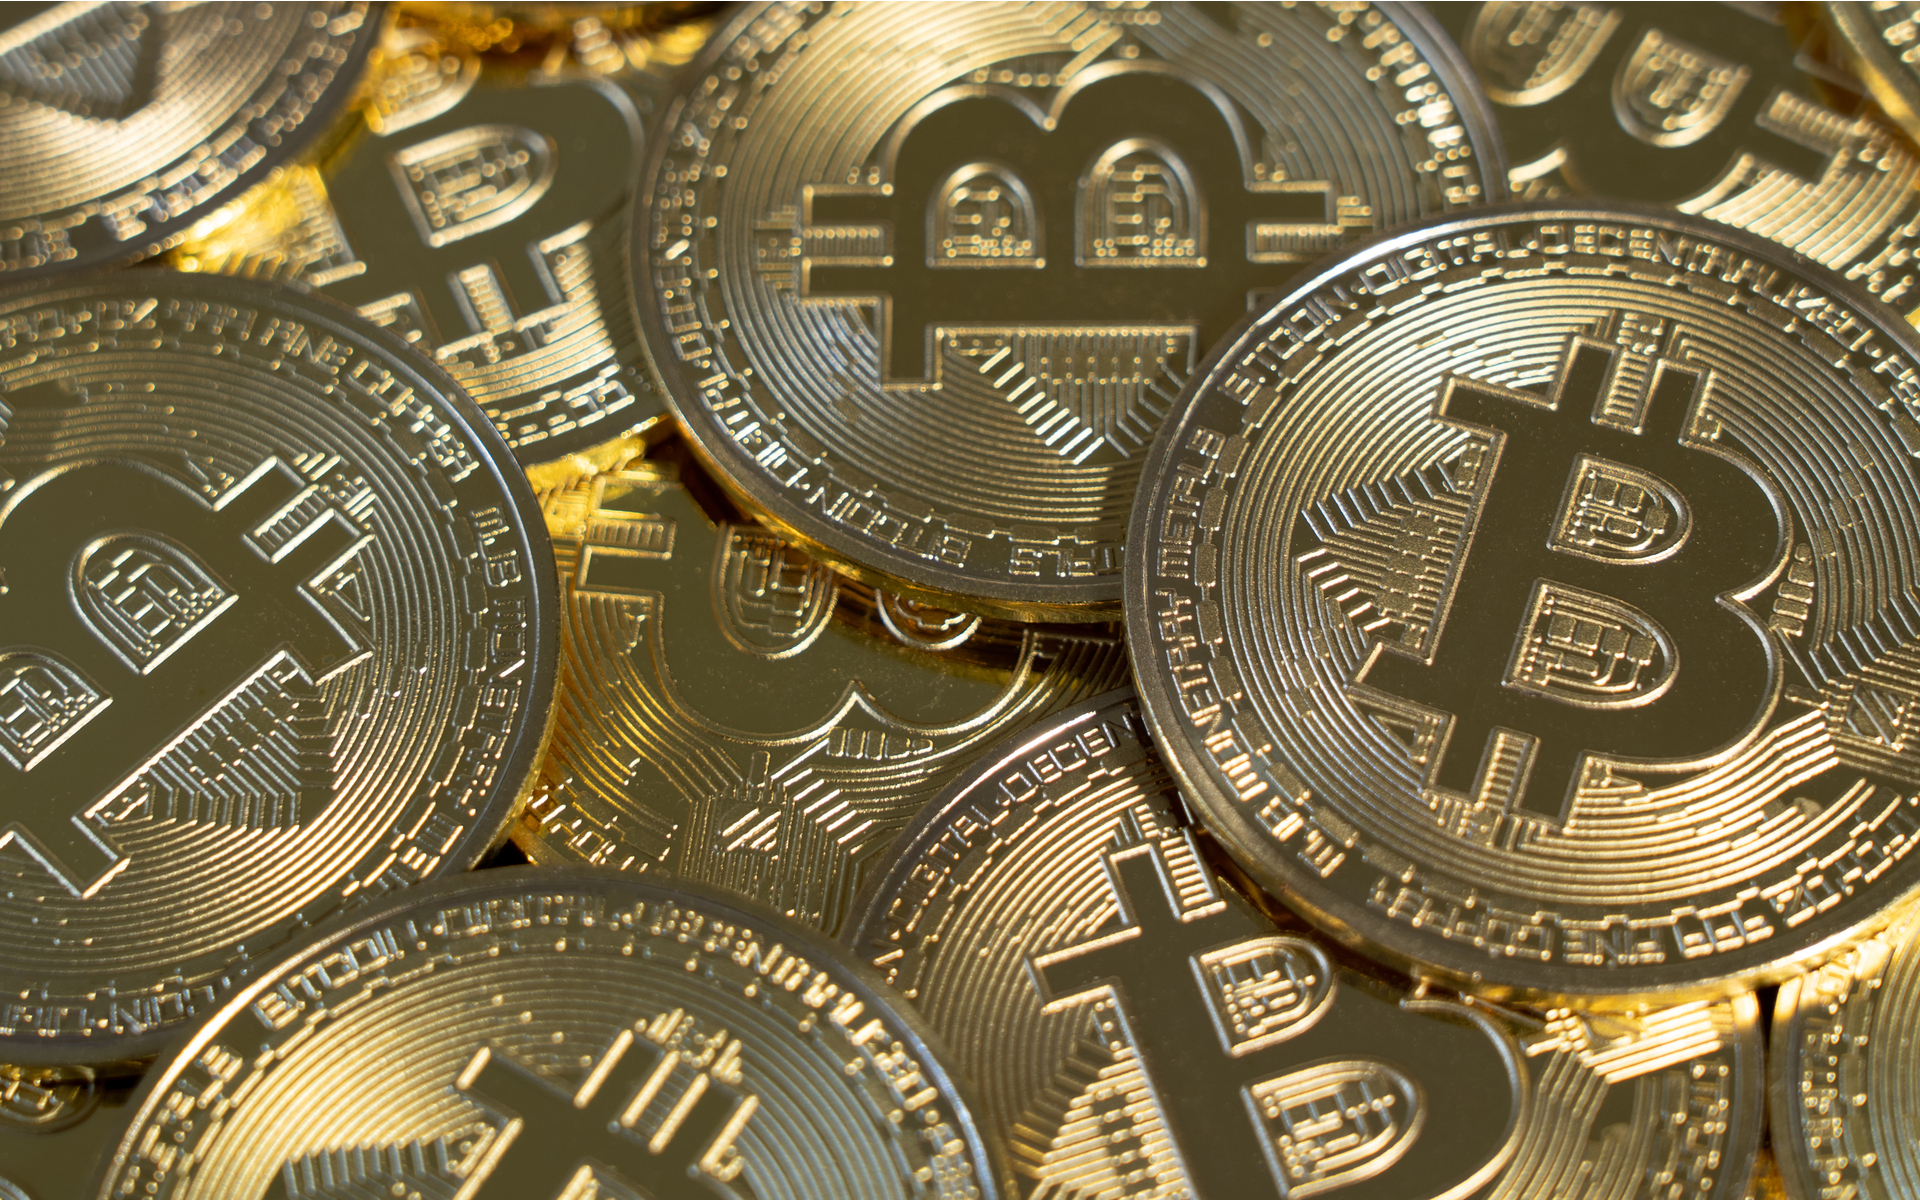 Bitcoin price could hit millions says analyst